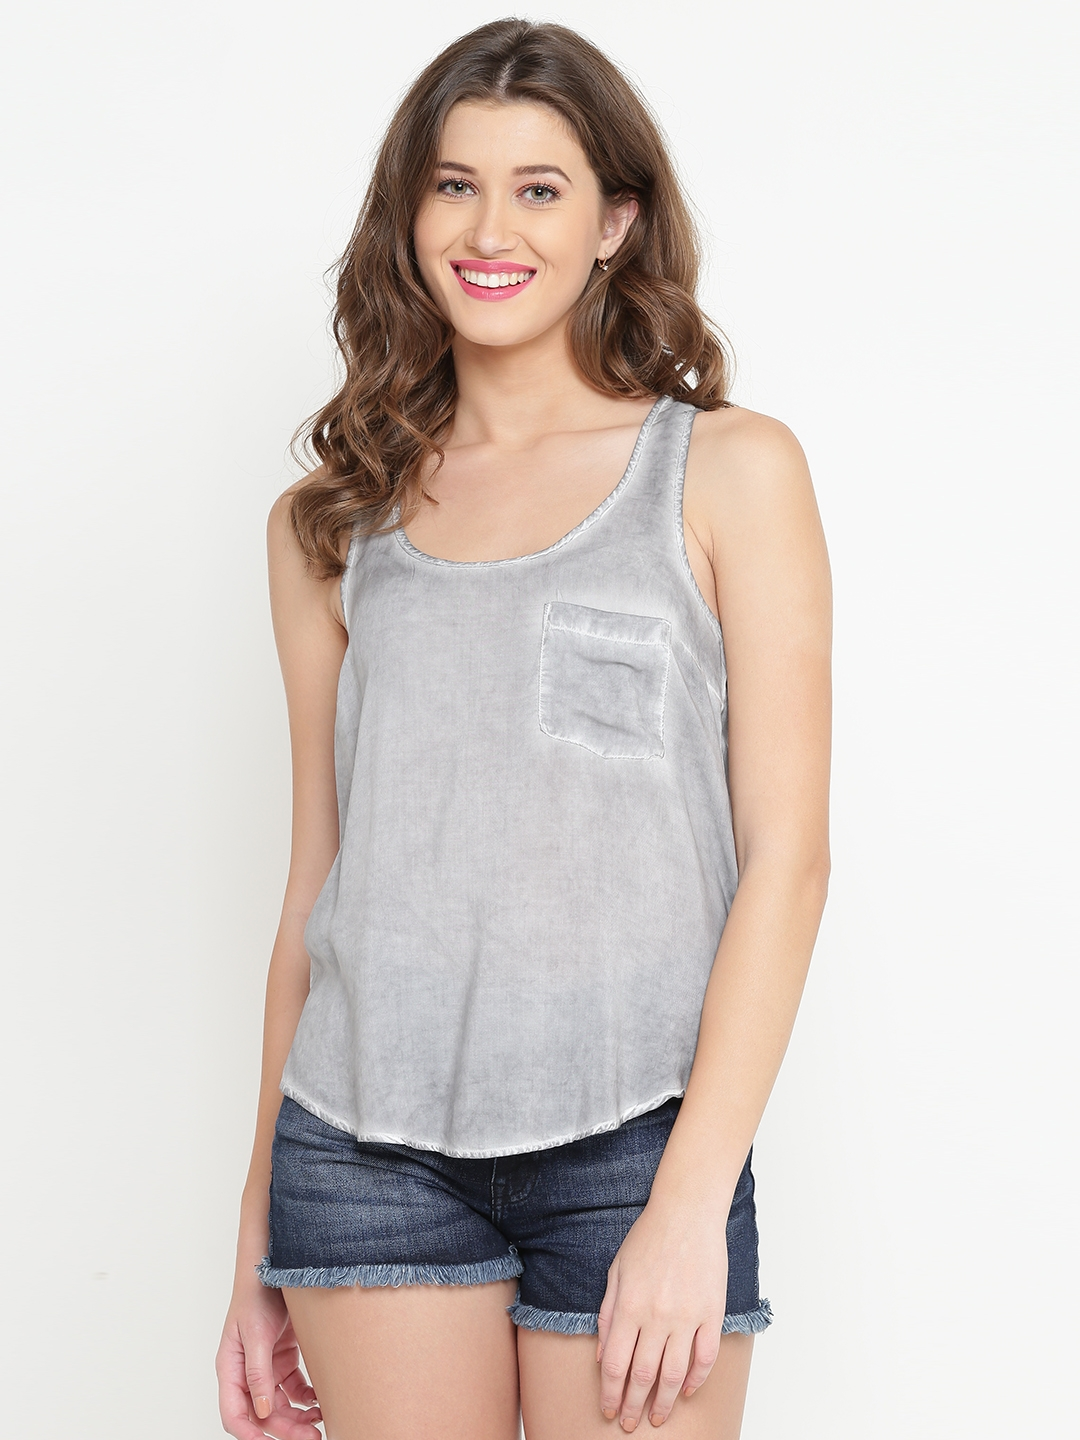 0a345c0b57e39 Buy FOREVER 21 Women Grey Faded Tank Top - Tops for Women 2119619 ...